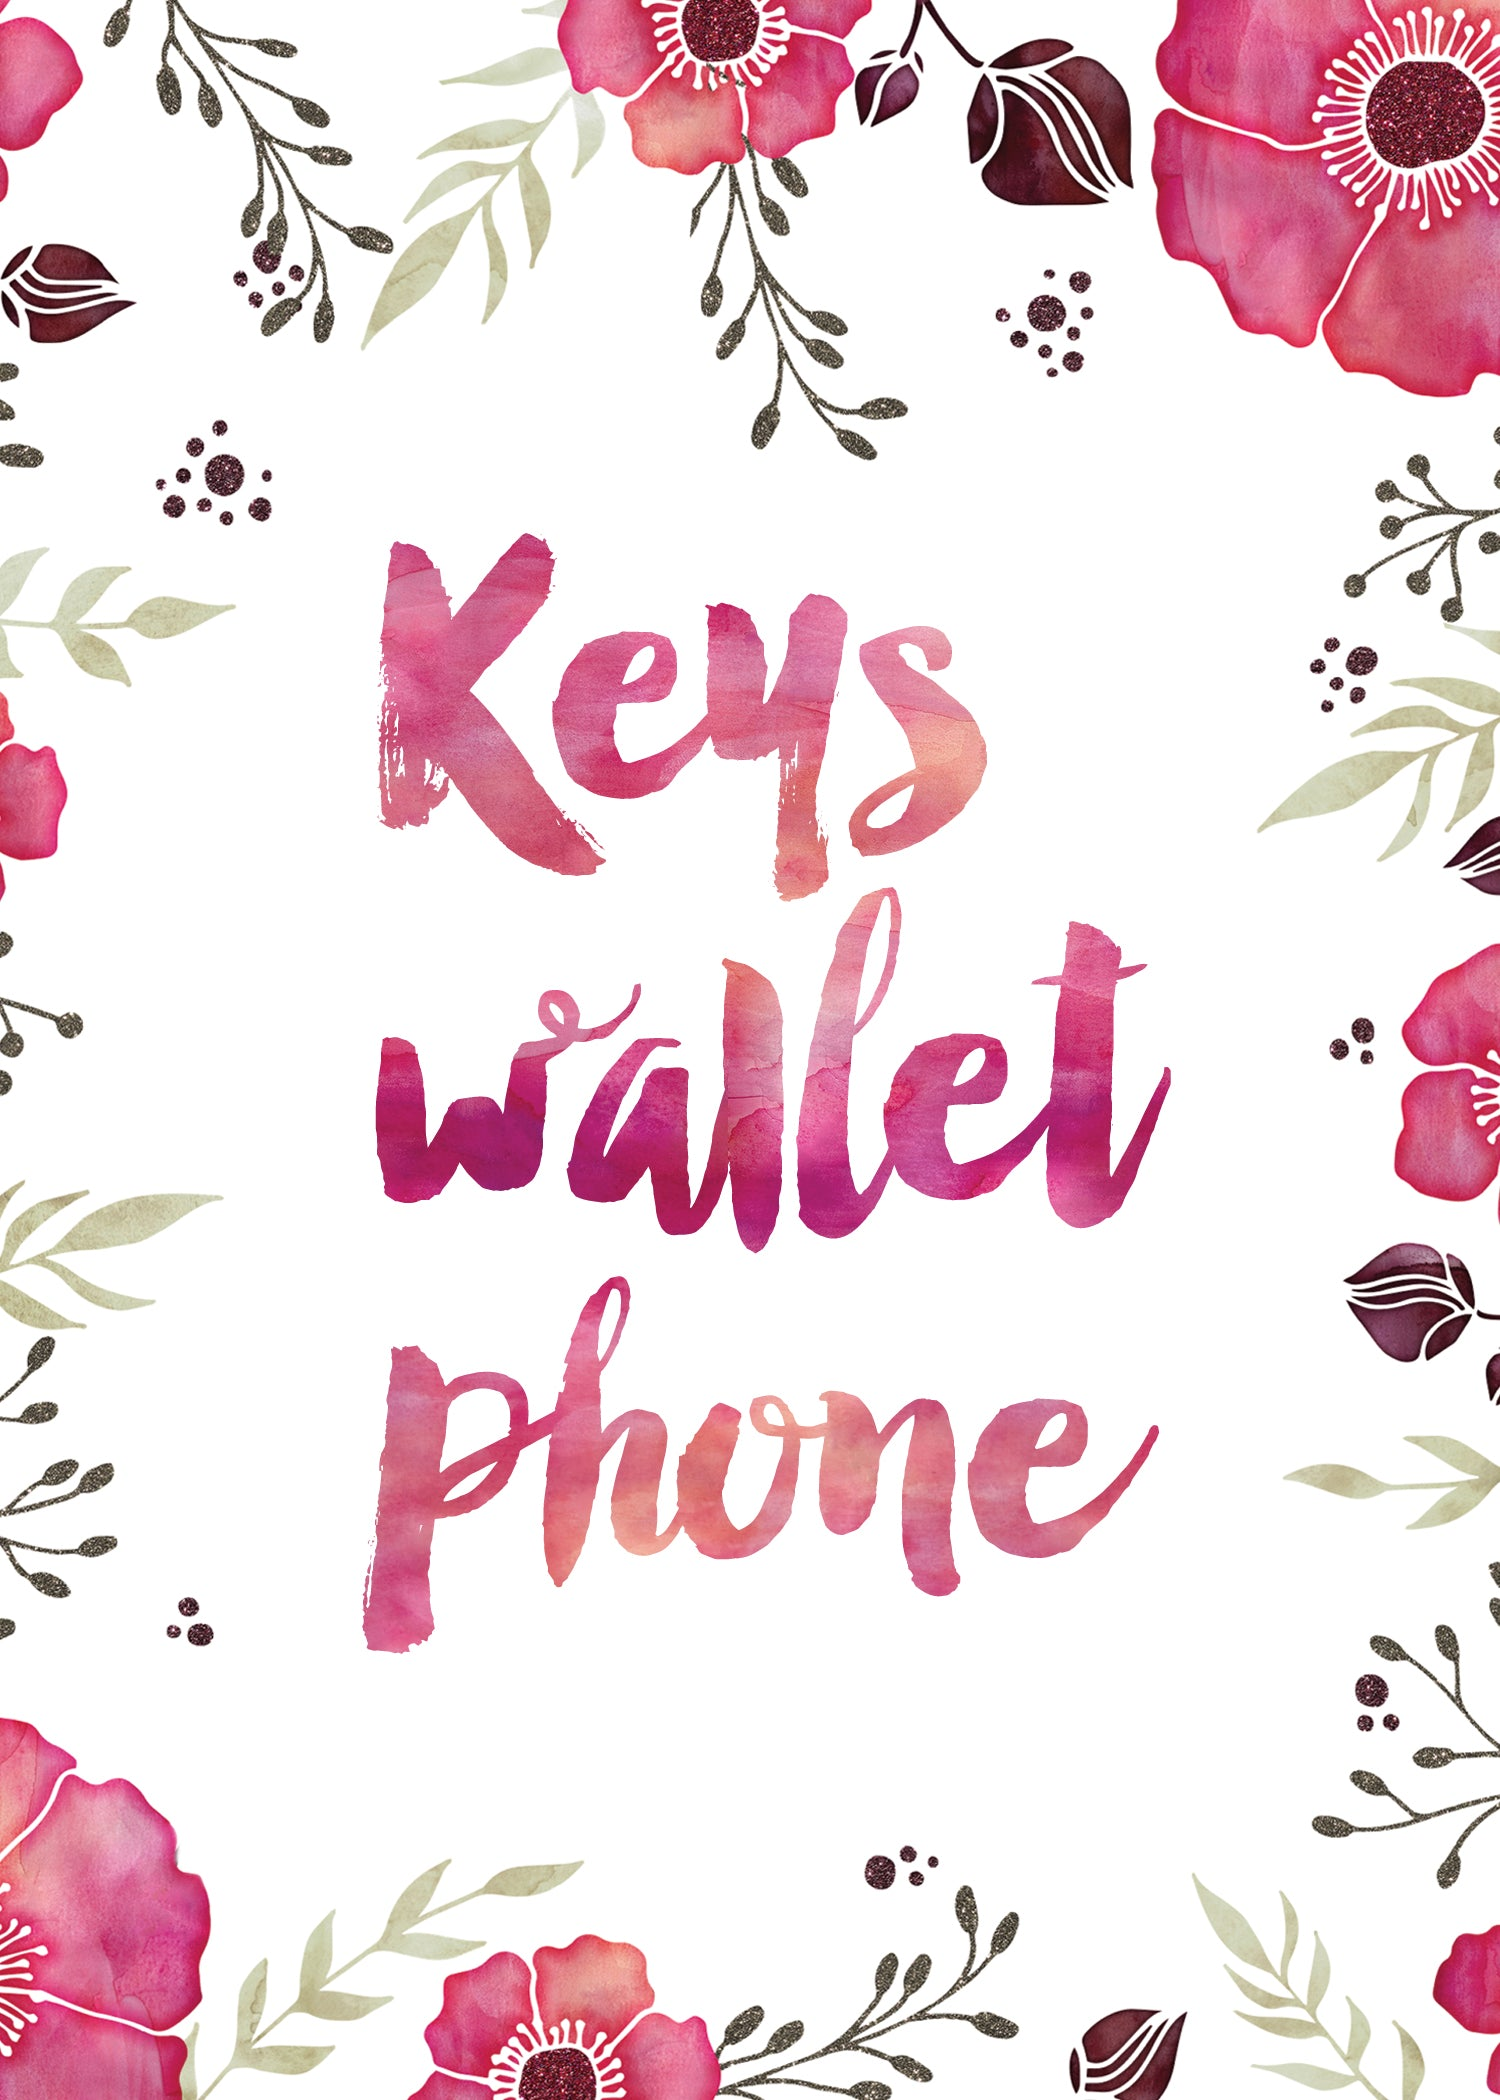 Keys Wallet Phone Art Print Free Download Printable